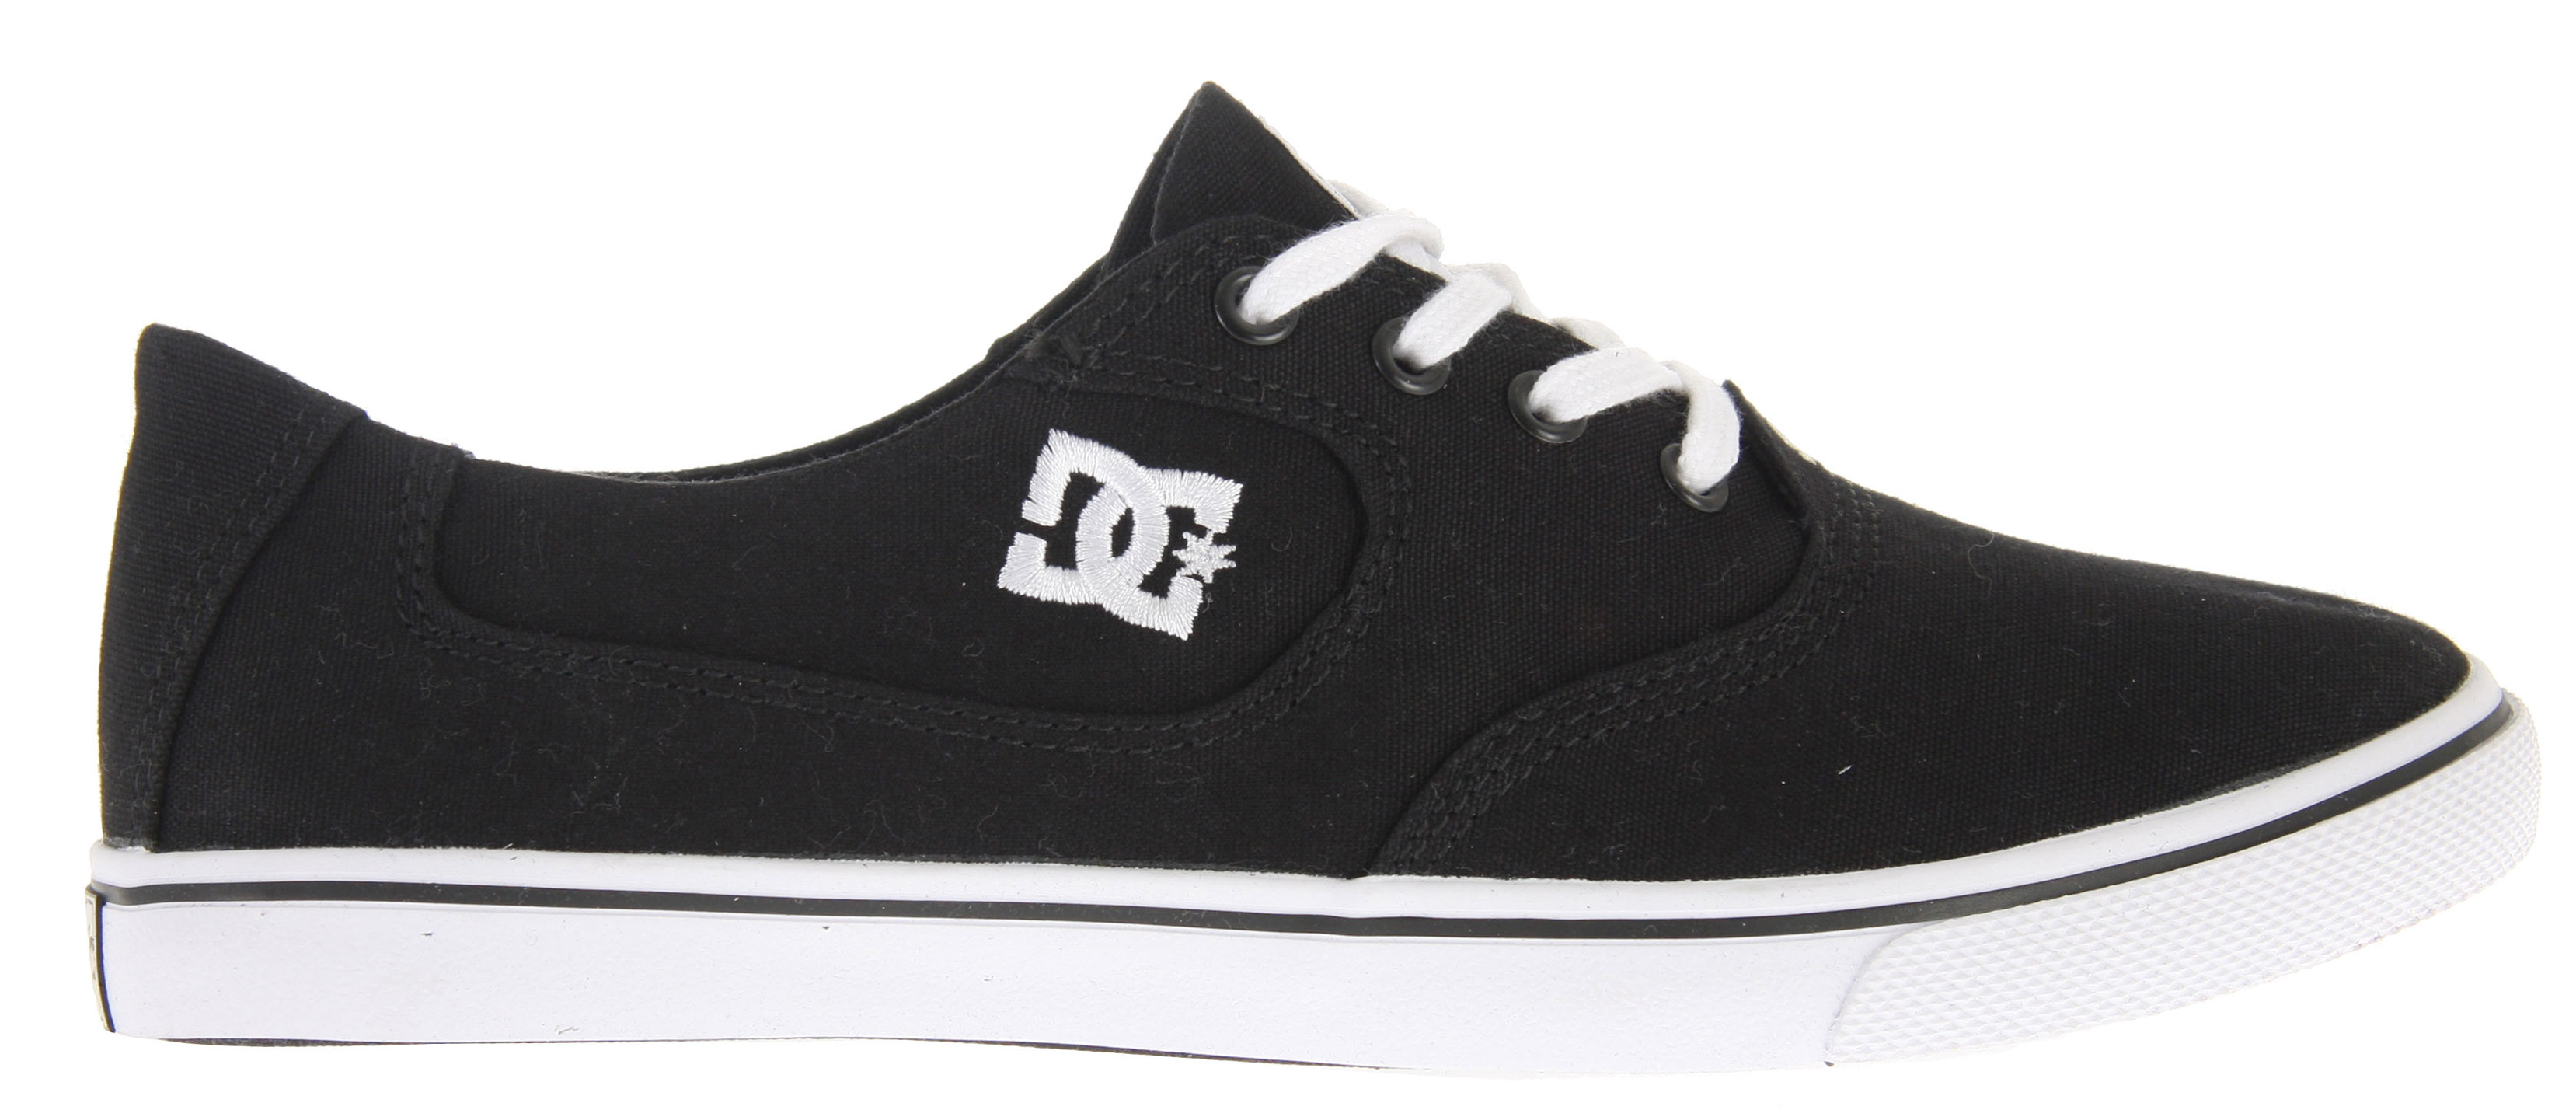 "Skateboard Key Features of the DC Flash Canvas Skate Shoes: Canvas upper Abrasion-Resistant Sticky Rubber Outsole DC's Trademarked ""Pill"" Pattern Embroidered DC logo - $25.95"